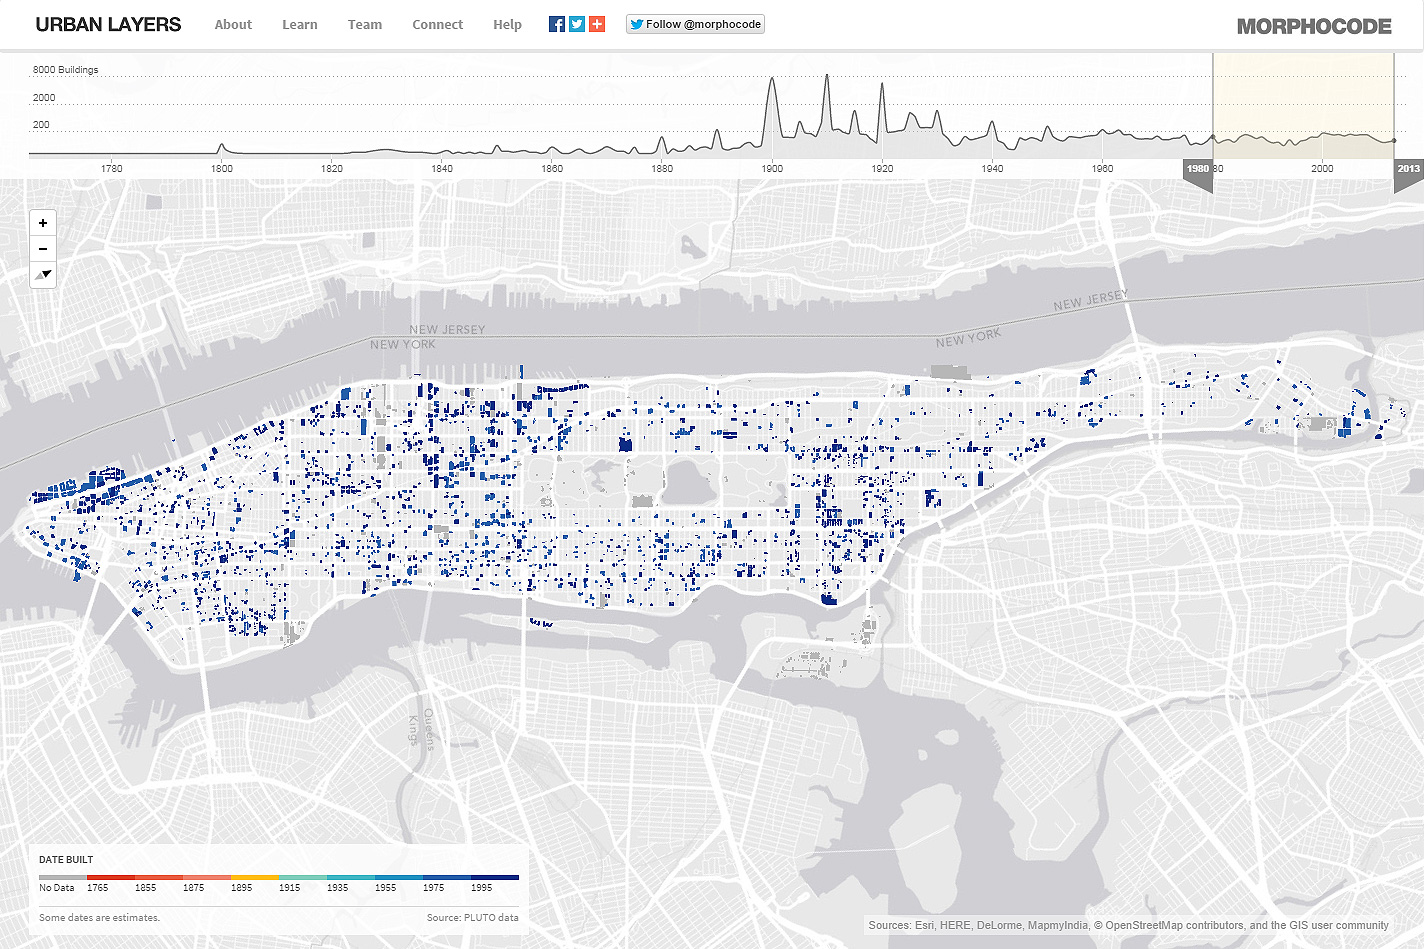 Urban Layers. Explore the structure of Manhattan's urban ... on street map manhattan, elevation map manhattan, census tract map manhattan, bronx zip map manhattan, travel map manhattan, google maps manhattan, postal code map manhattan, phone area code manhattan, district map manhattan, map of manhattan, zip code map manhattan,